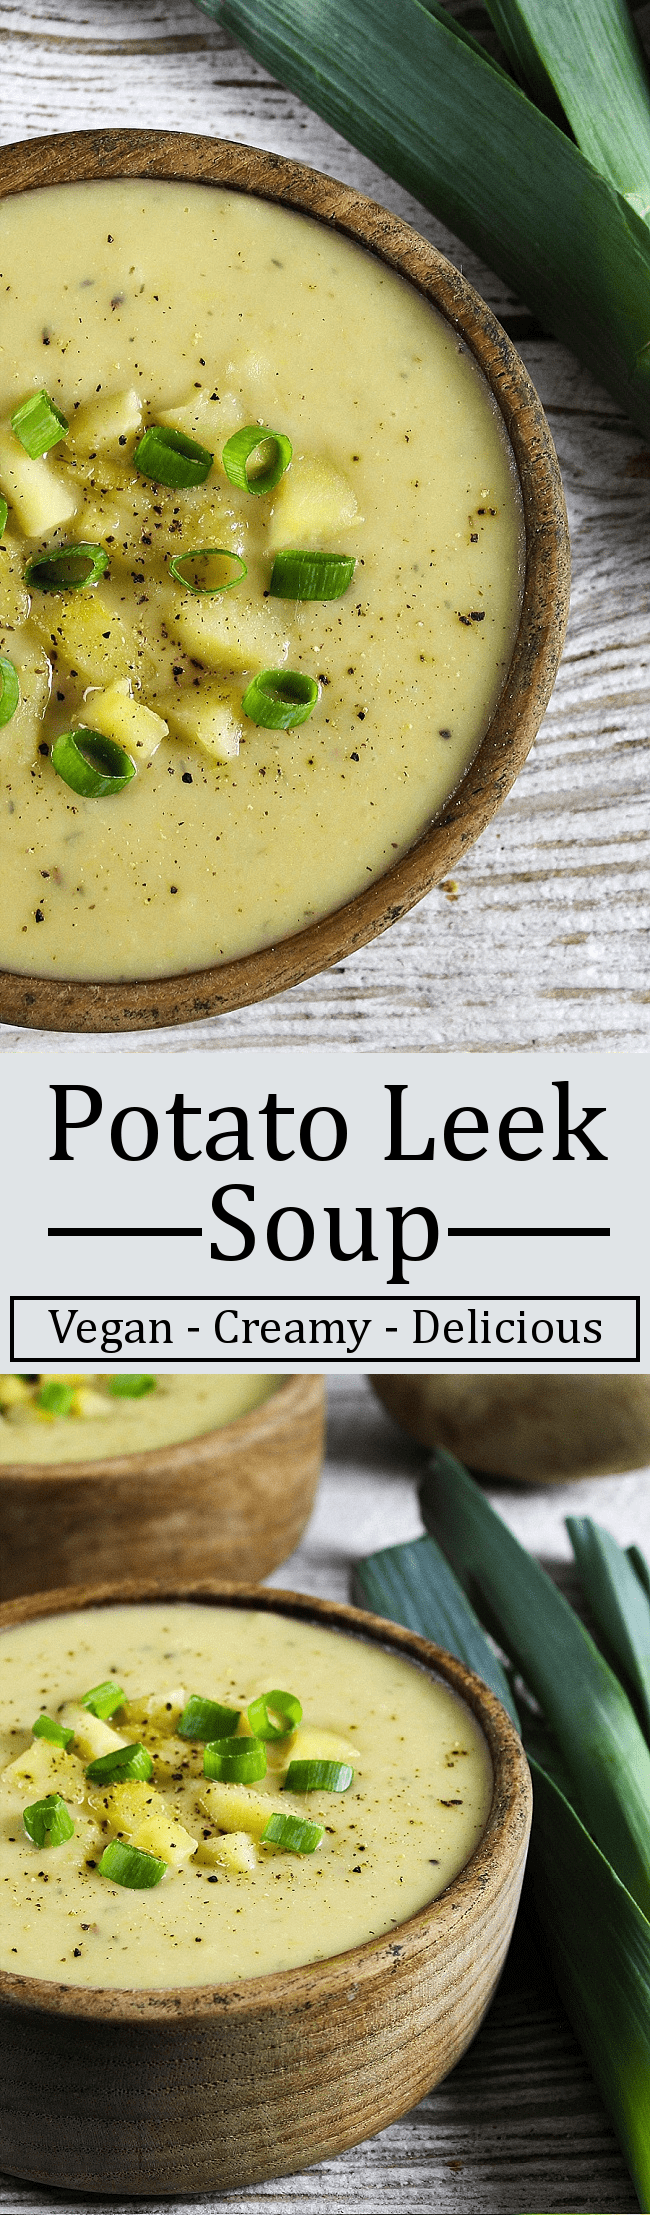 This Vegan Potato Leek Soup is creamy, comforting and filling. It's dairy-free, gluten-free and nutritious. Perfect for those chilly days, too.